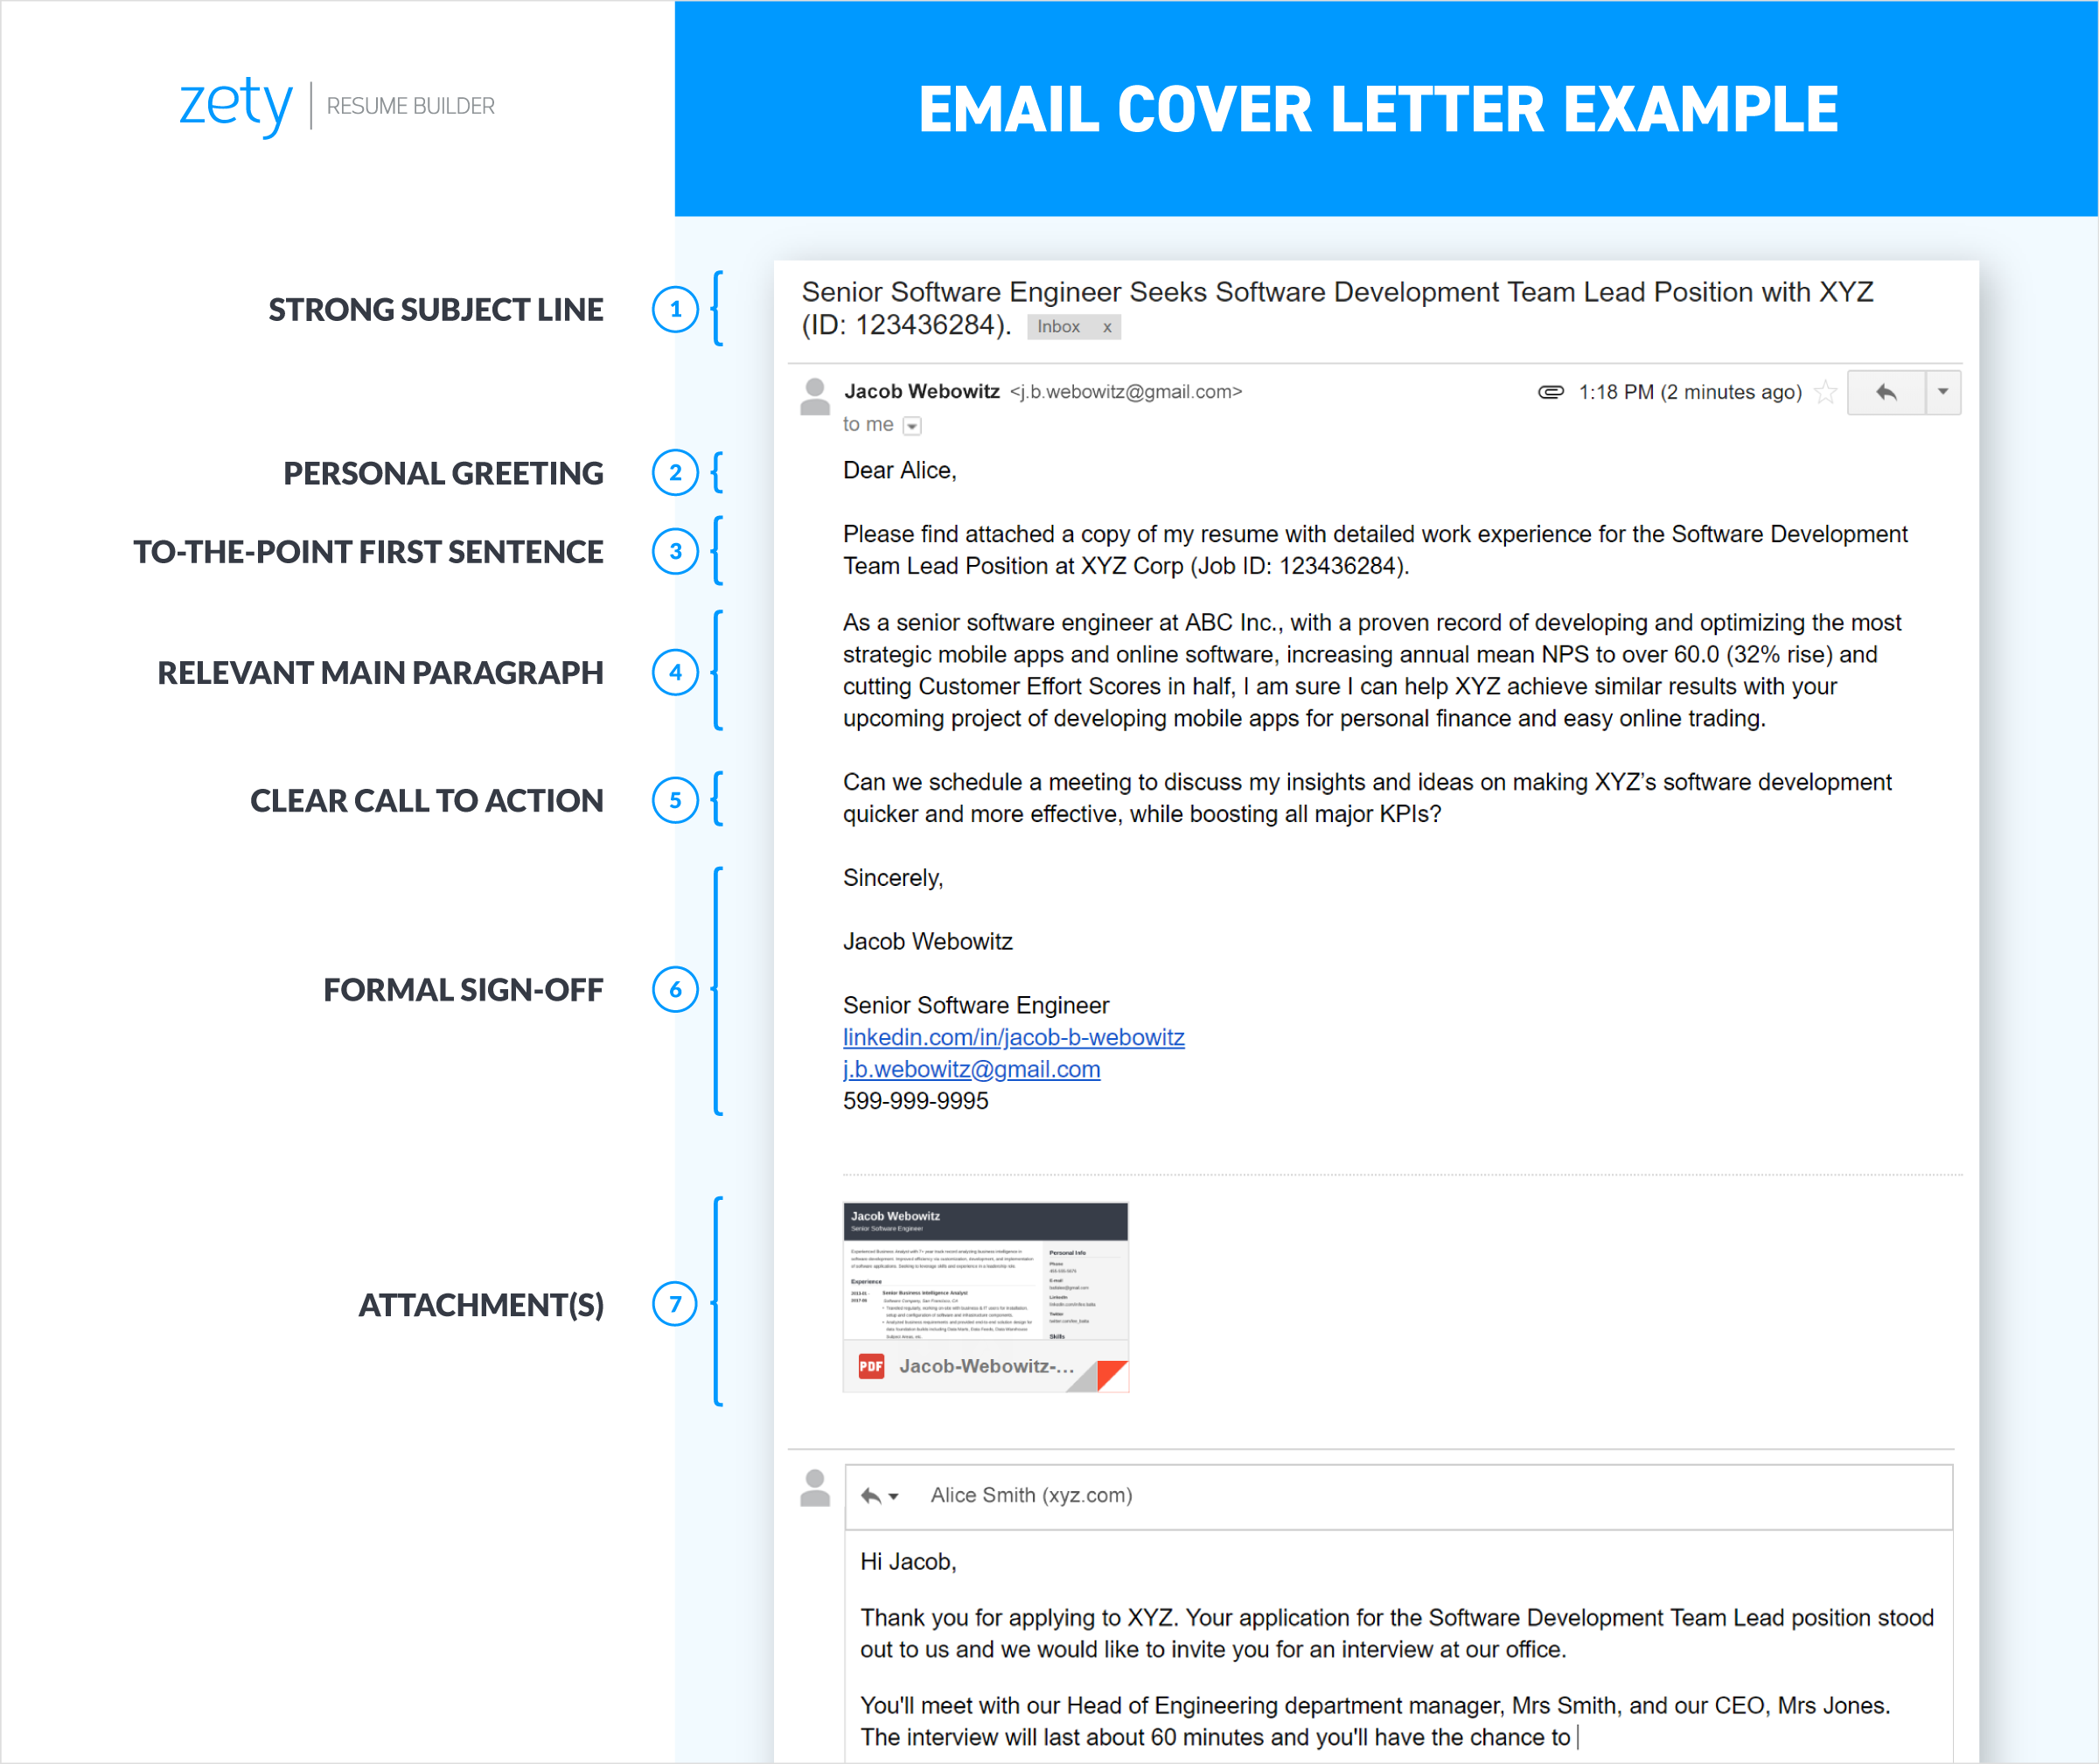 sample cover letter email email cover letter sample proper email format 20 tips 24567 | sample email cover letter